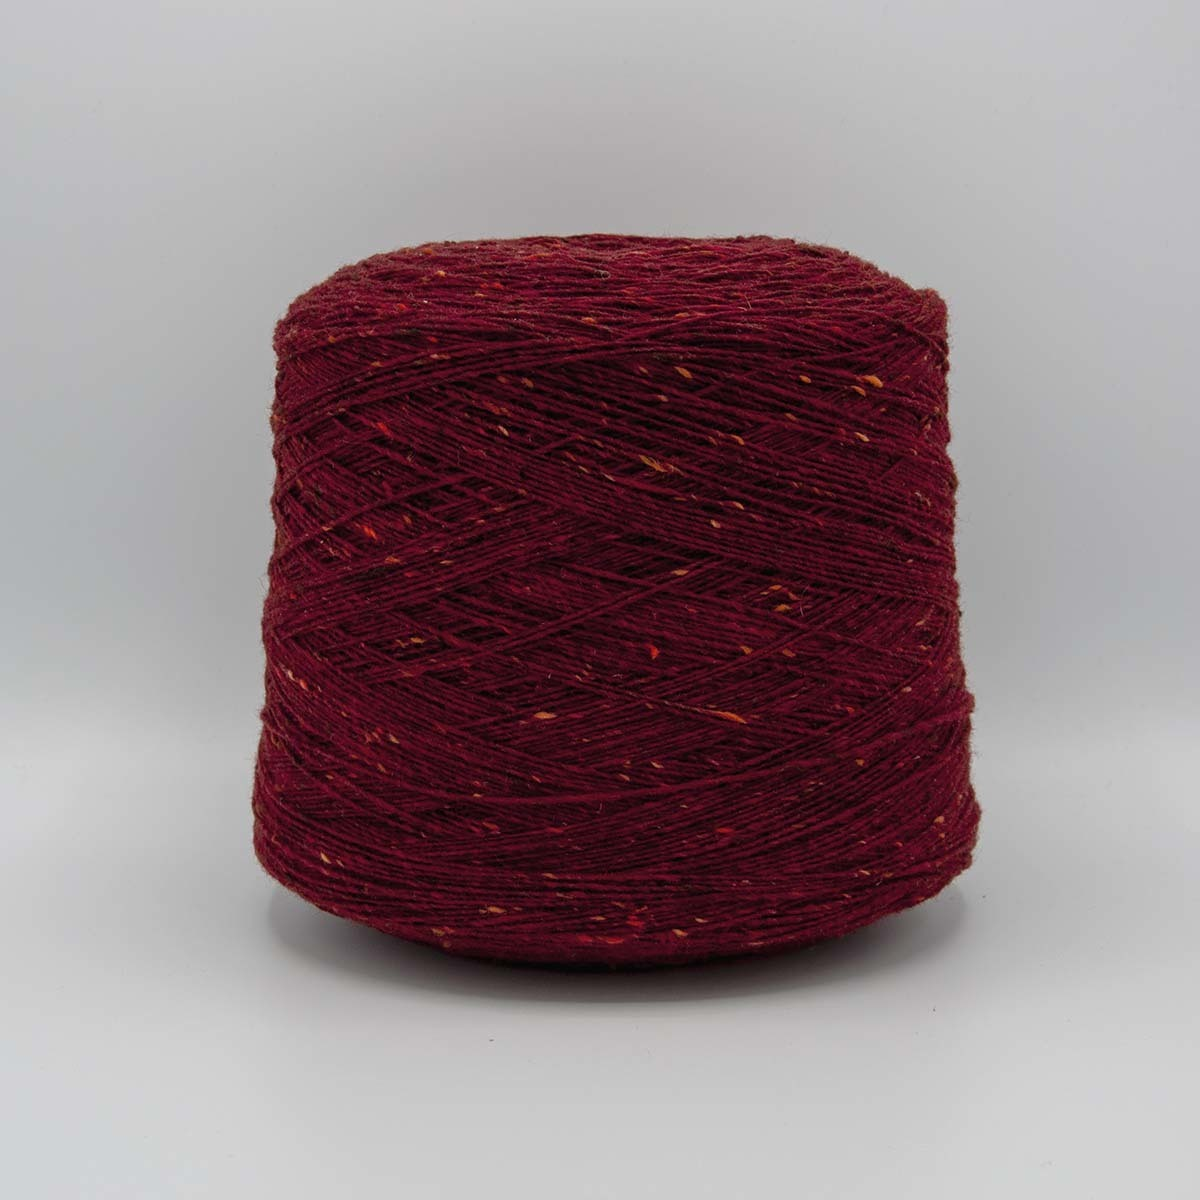 Knoll Yarns Soft Donegal (одинарный твид) - 5503